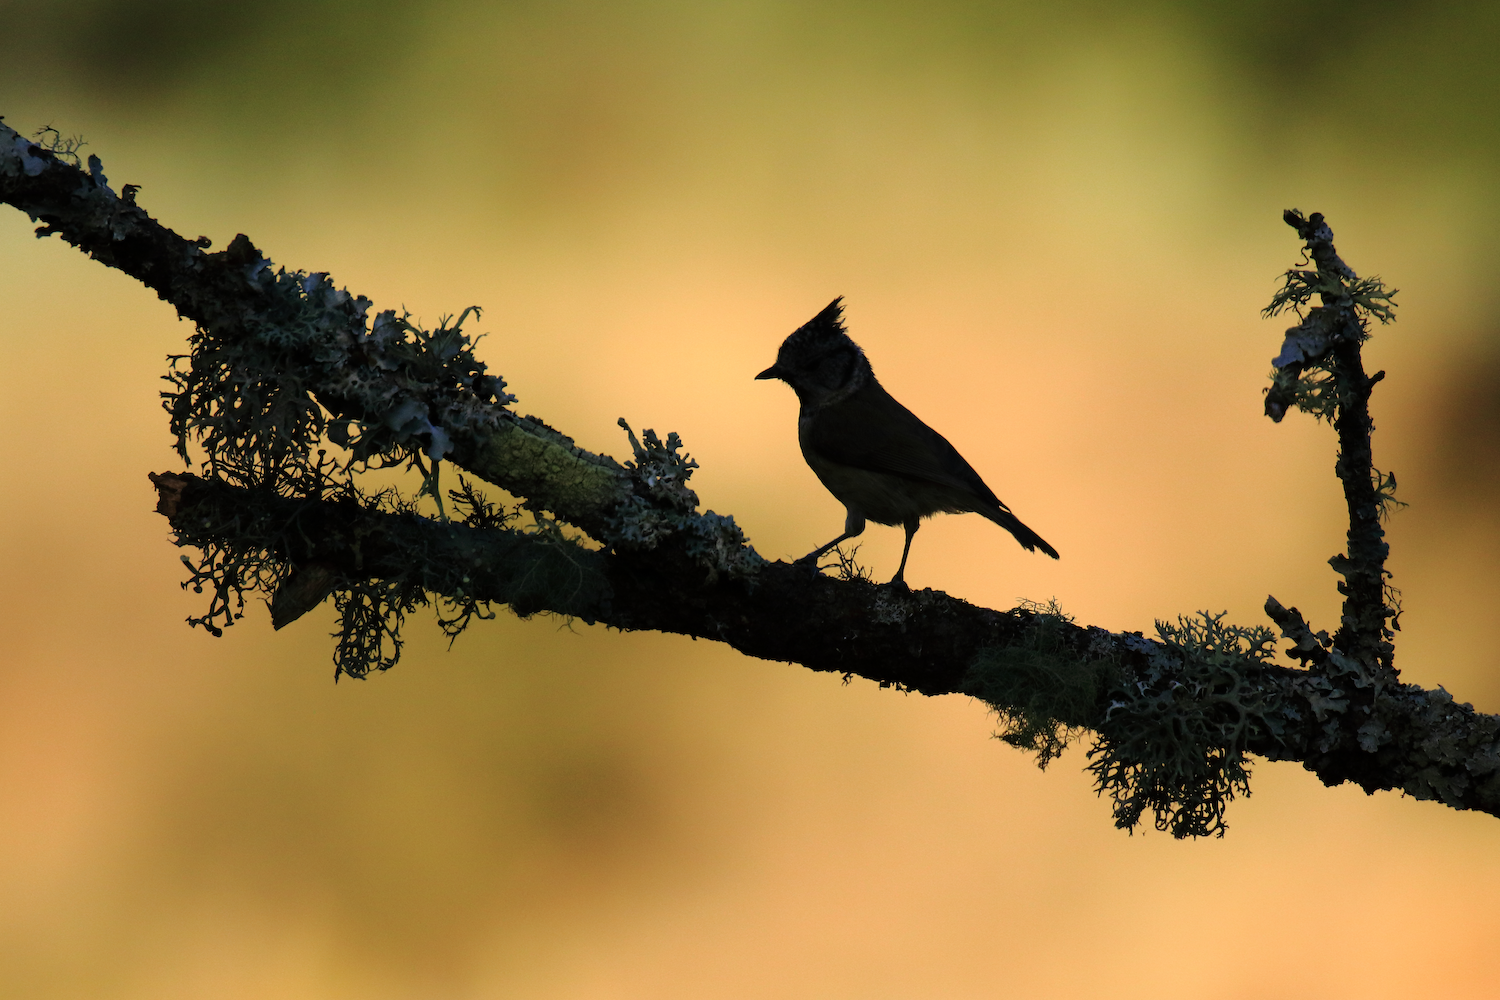 Backlit shot of a Crested Tit perching on a branch with moss on it.